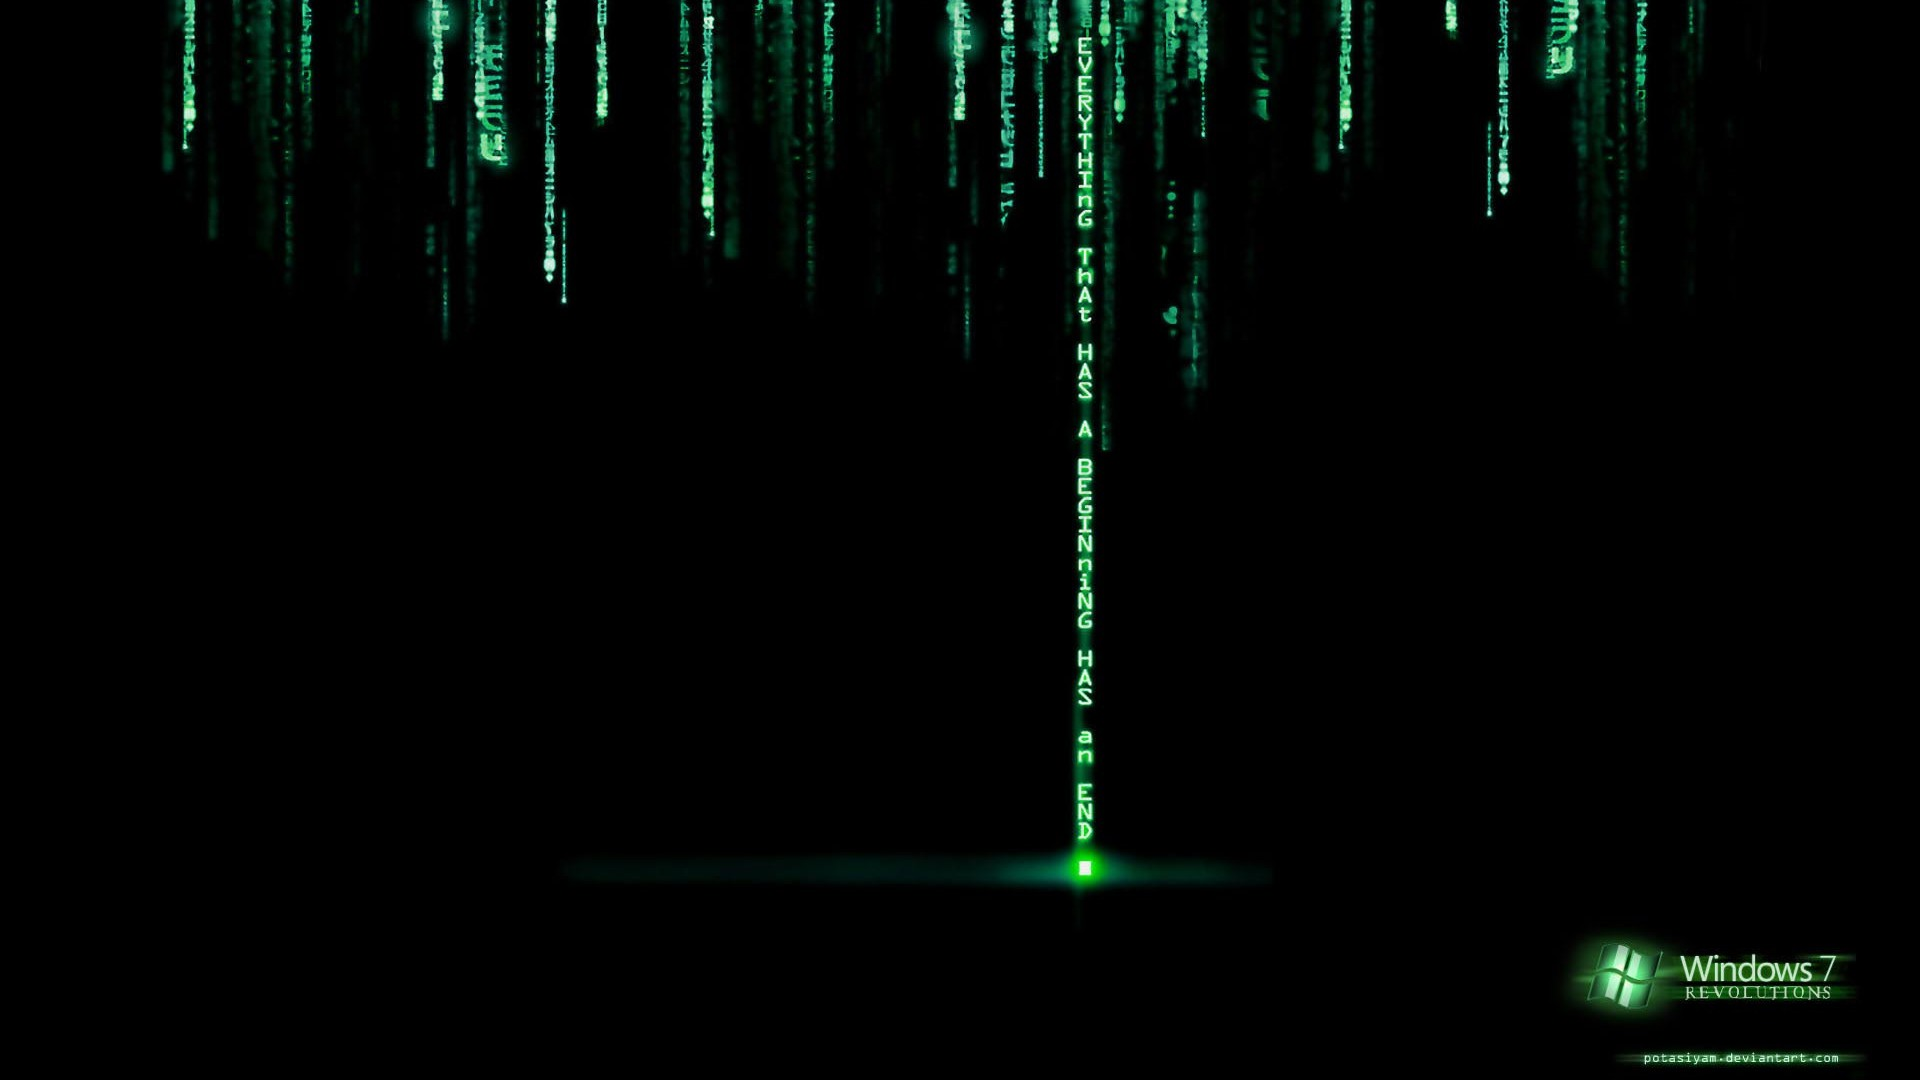 Must see Wallpaper High Quality Windows 7 - the-matrix-black-wallpaper_044902620  Pictures_347181.jpg